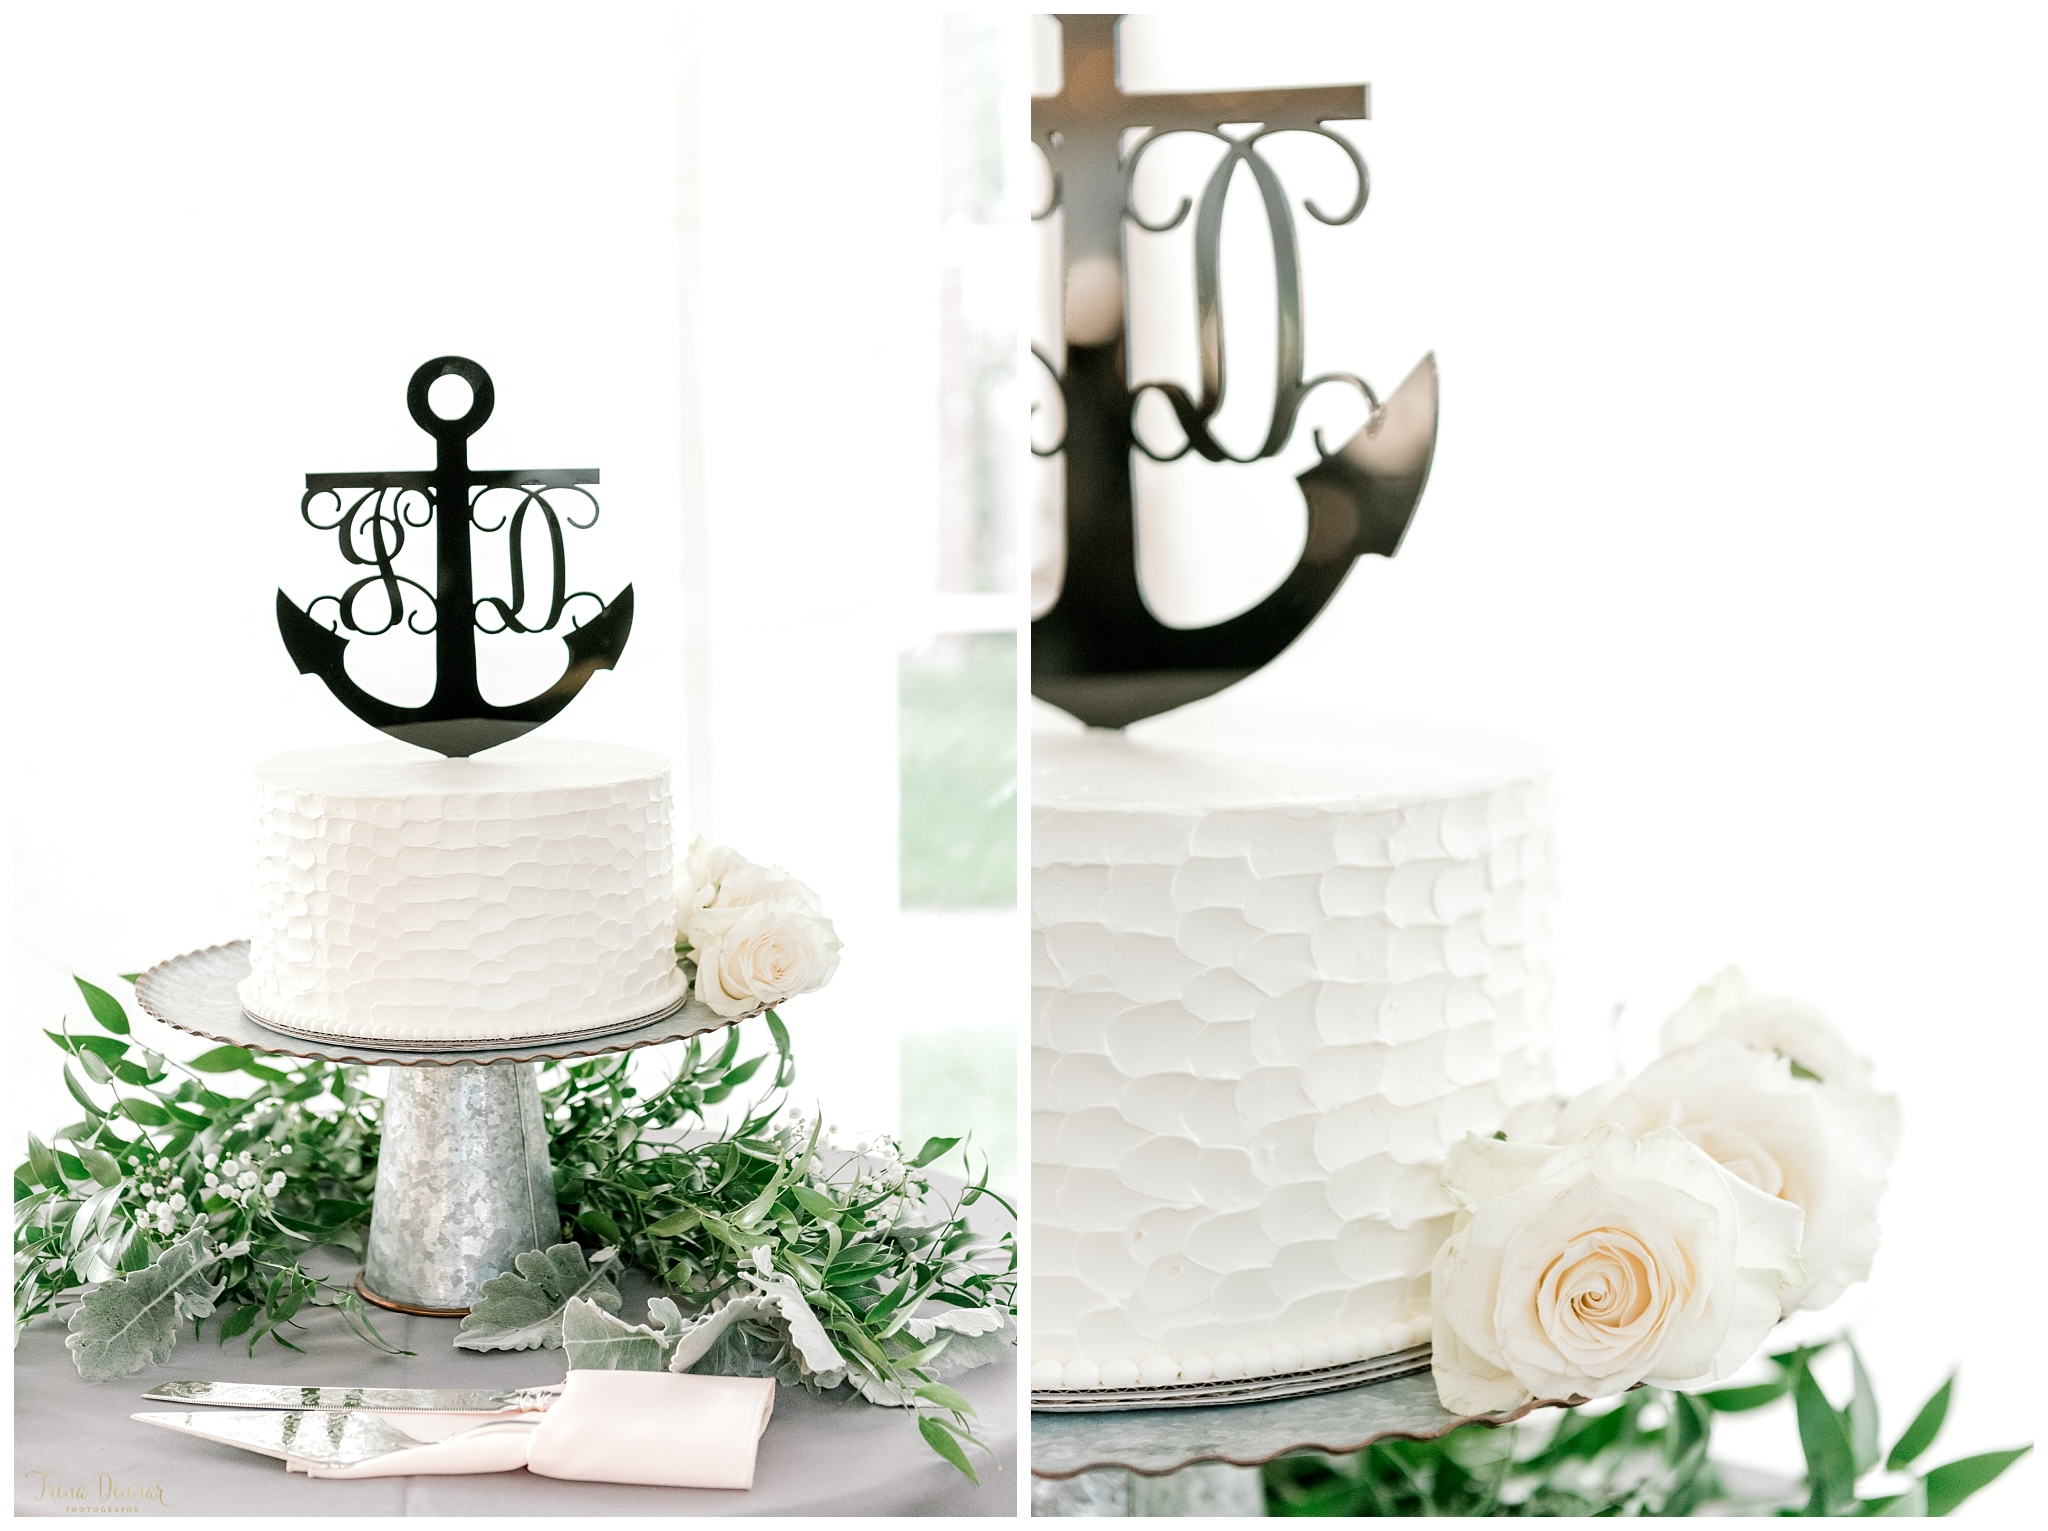 Nautical Maine Wedding Cake by Landry's Confections